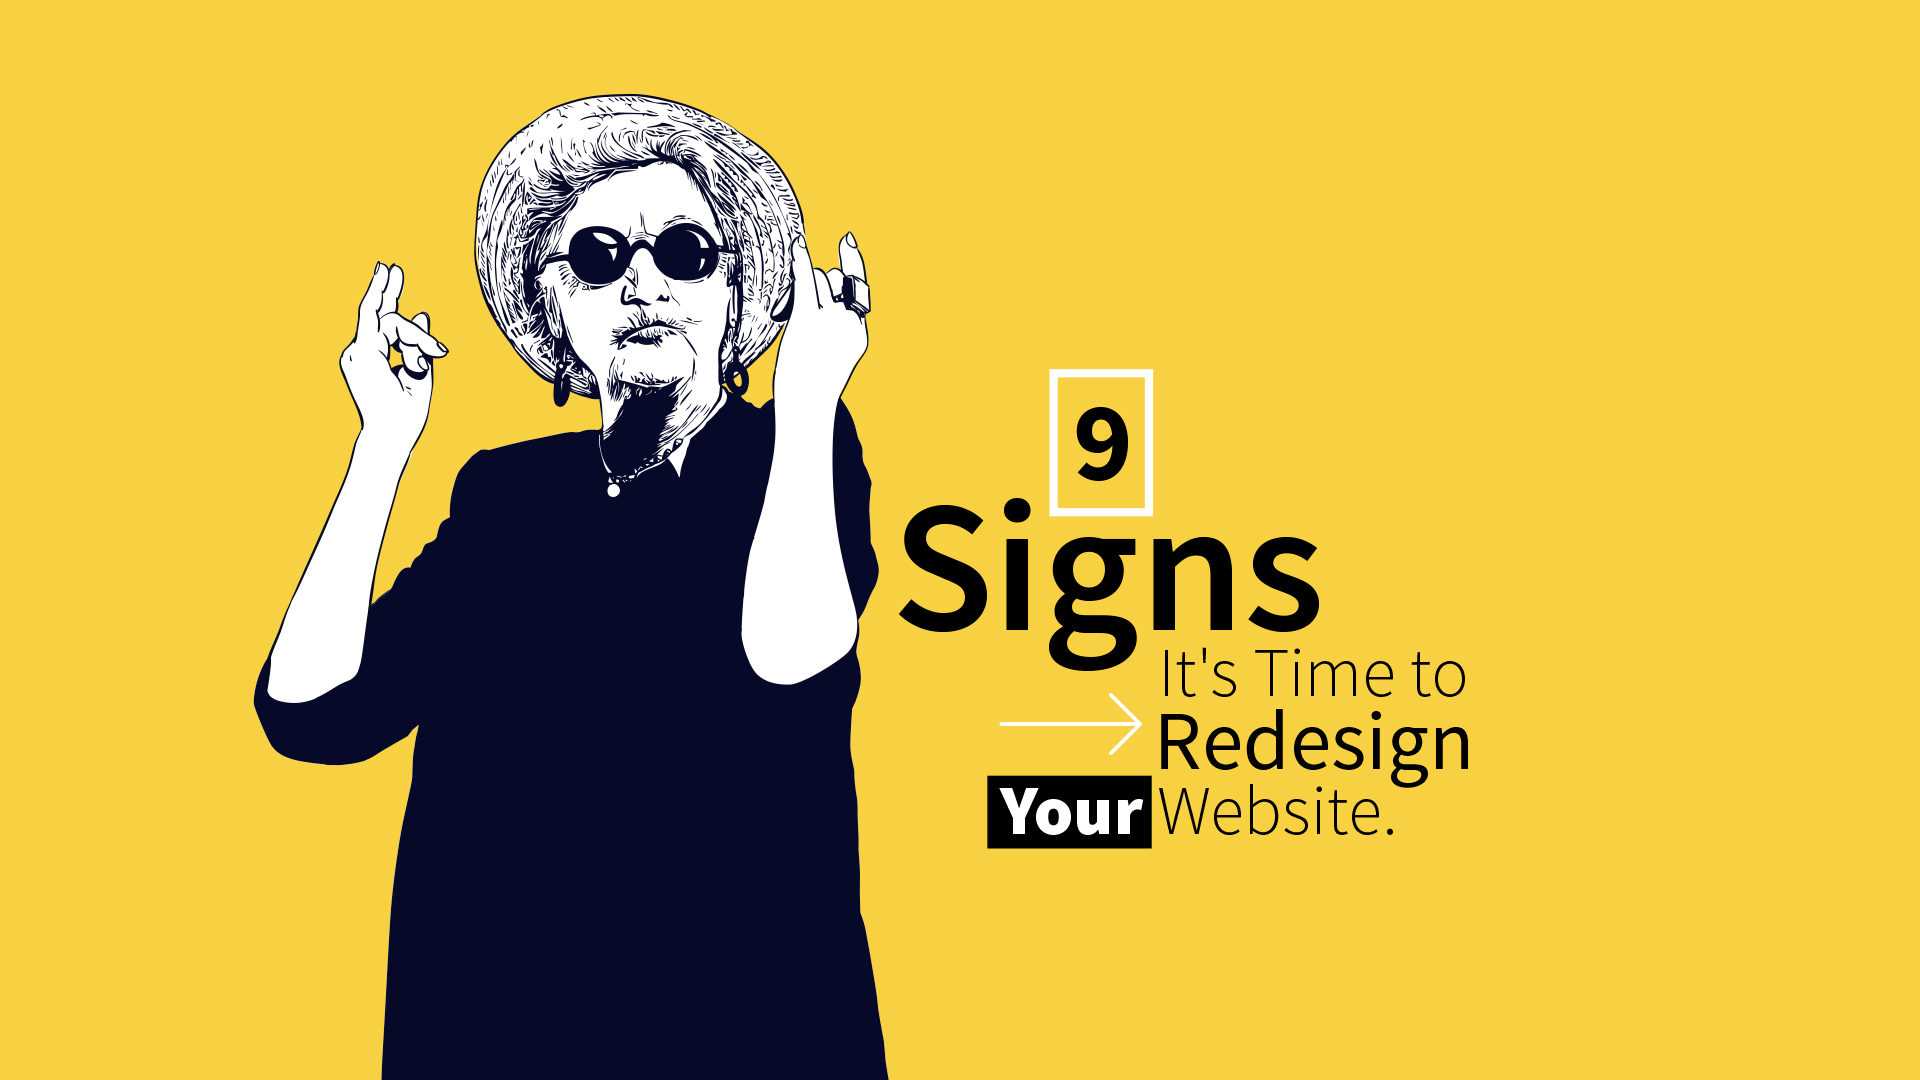 9 Signs It's Time to Redesign Your Website